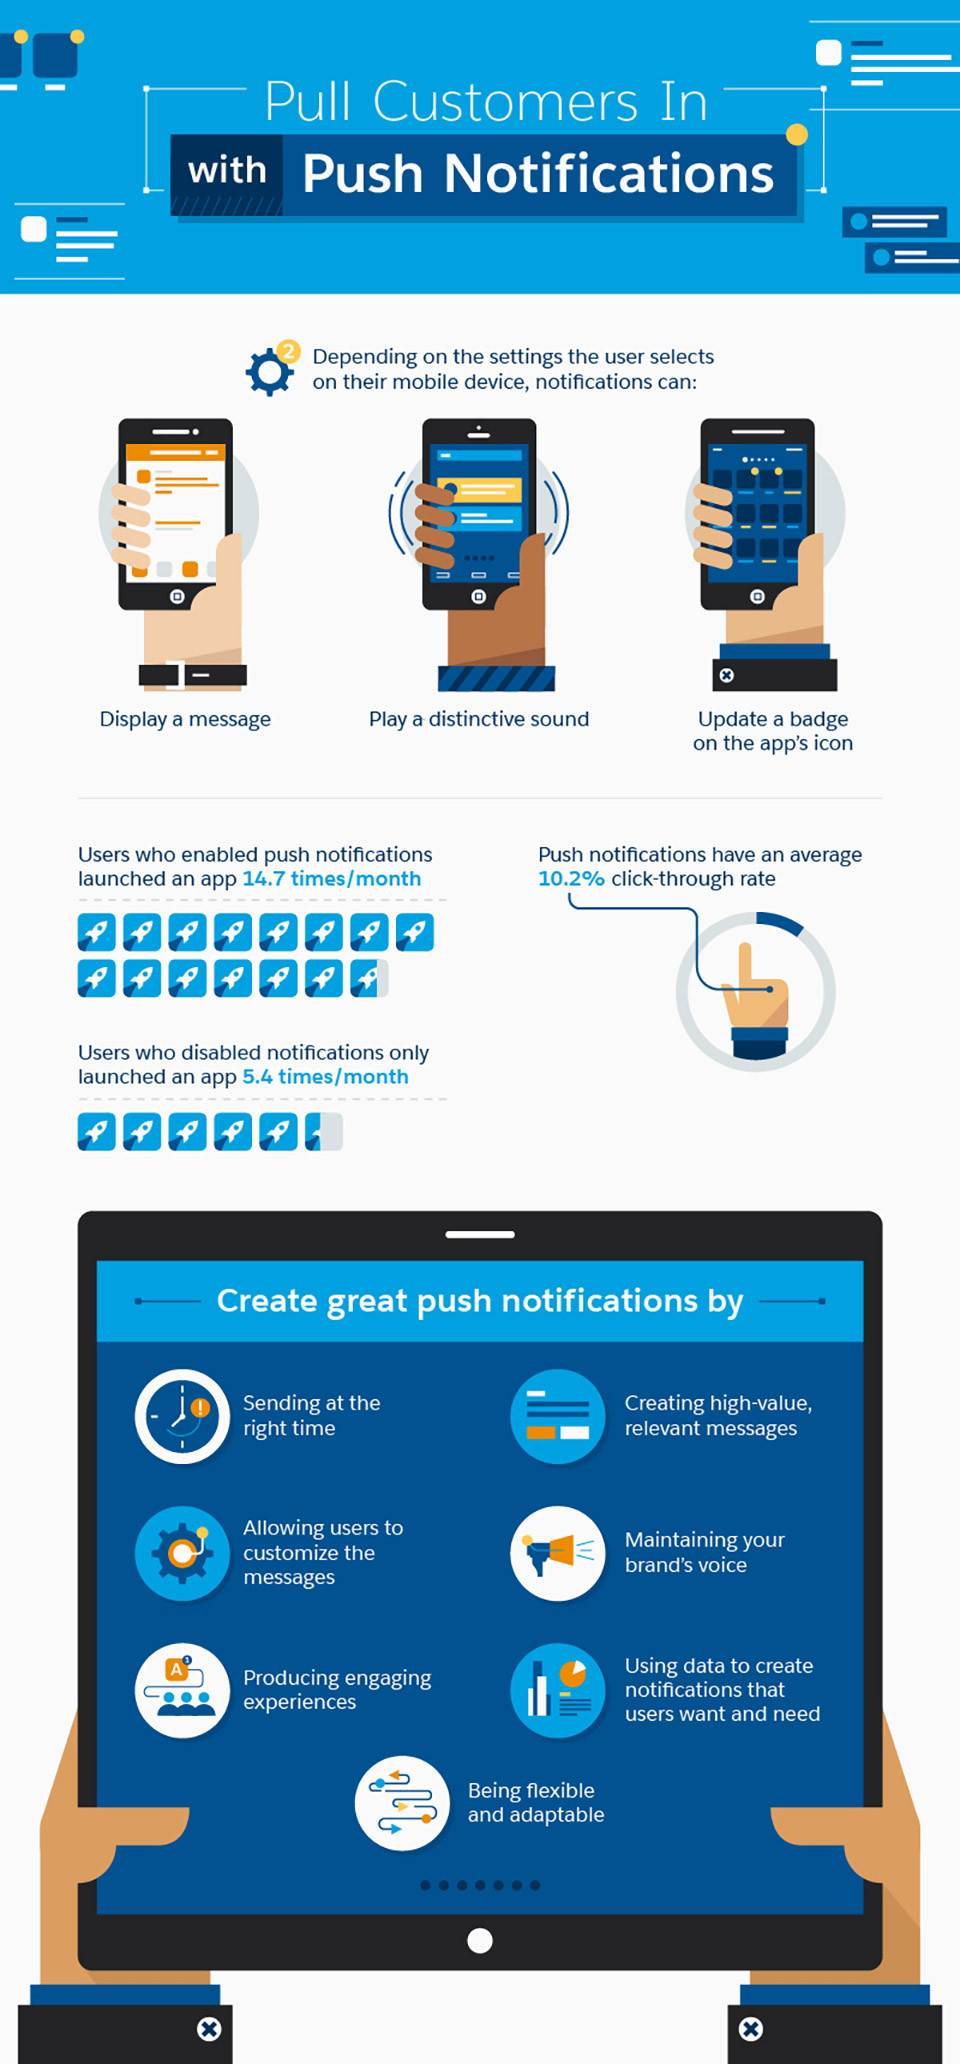 pull-customers-in-with-push-notifications-002.jpg